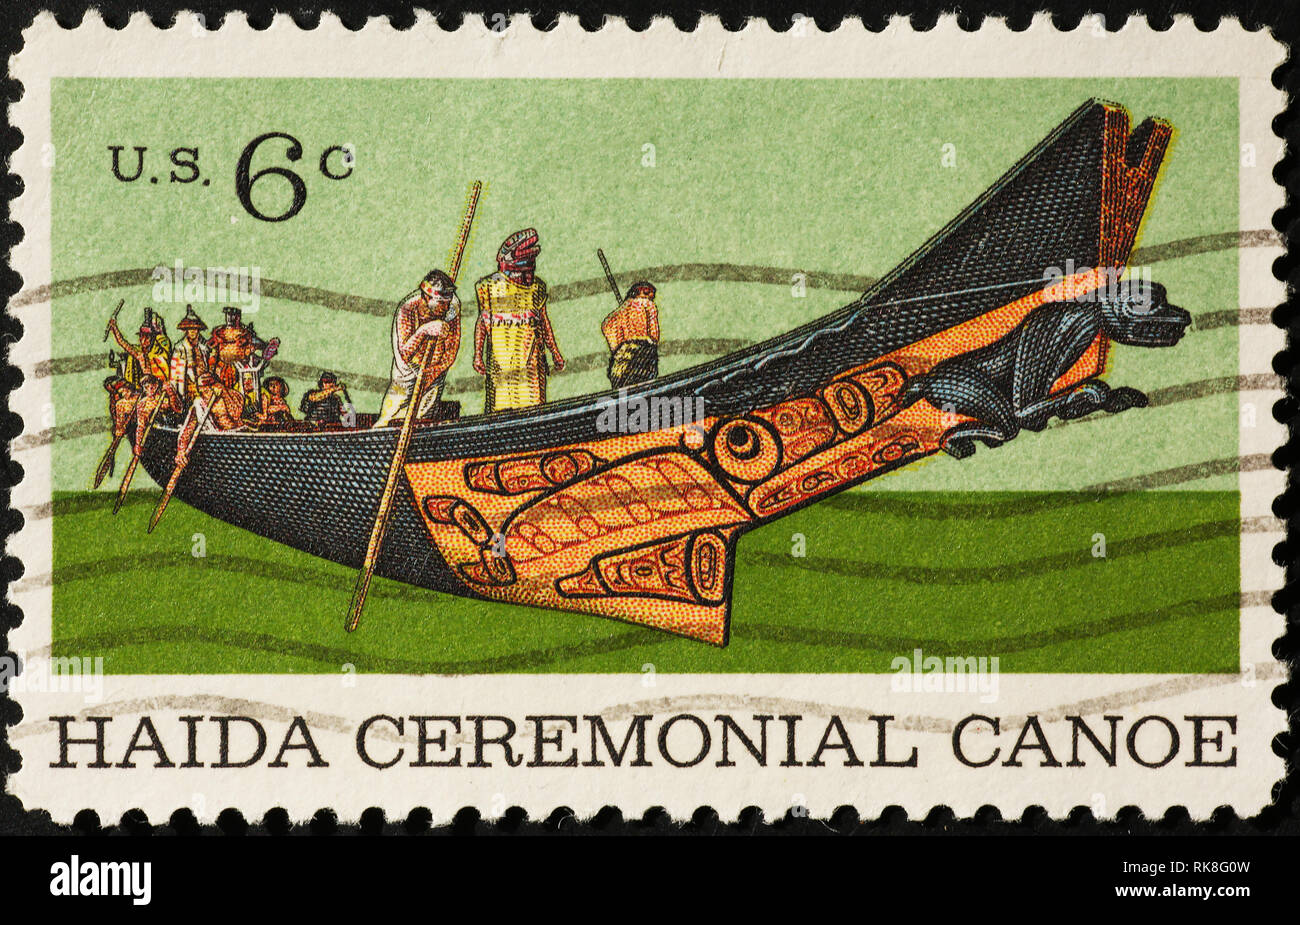 Haida ceremonial canoe on american postage stamp - Stock Image